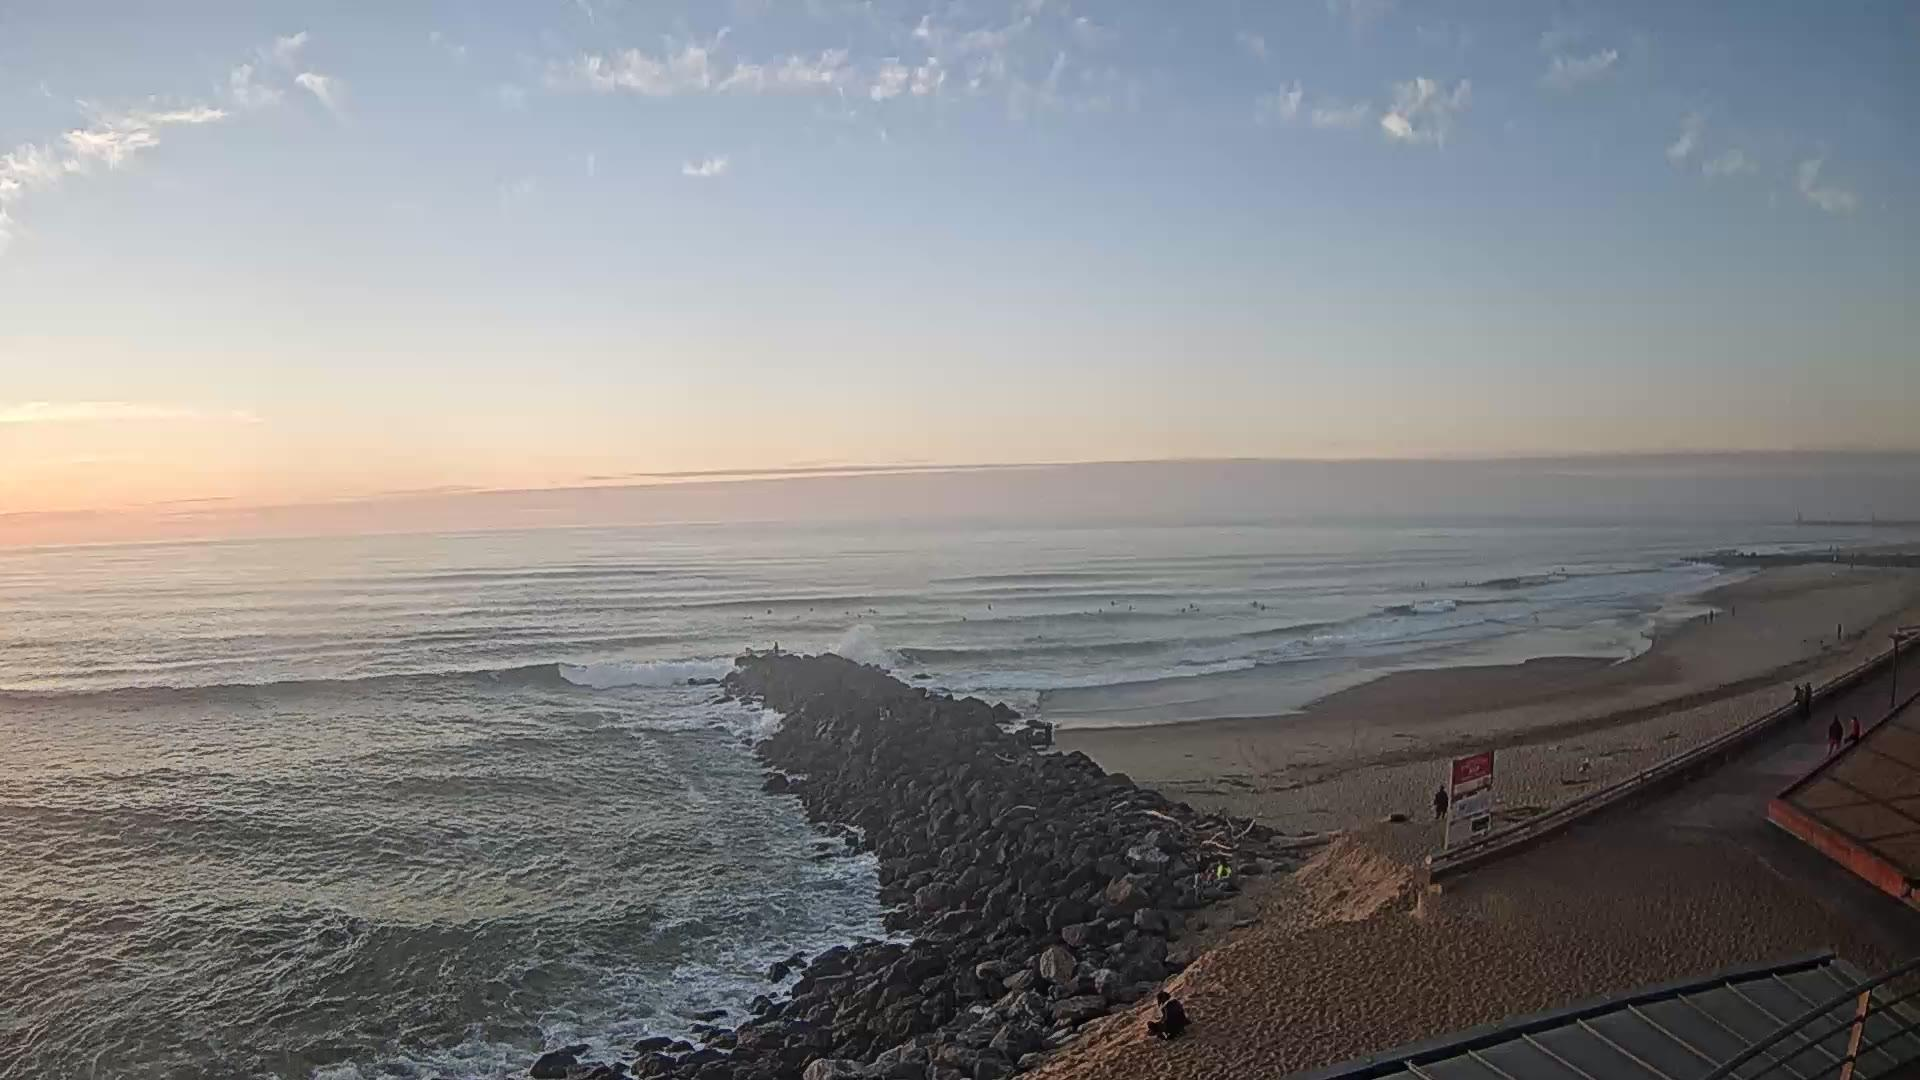 Webcam Capbreton: Webcam HD Live